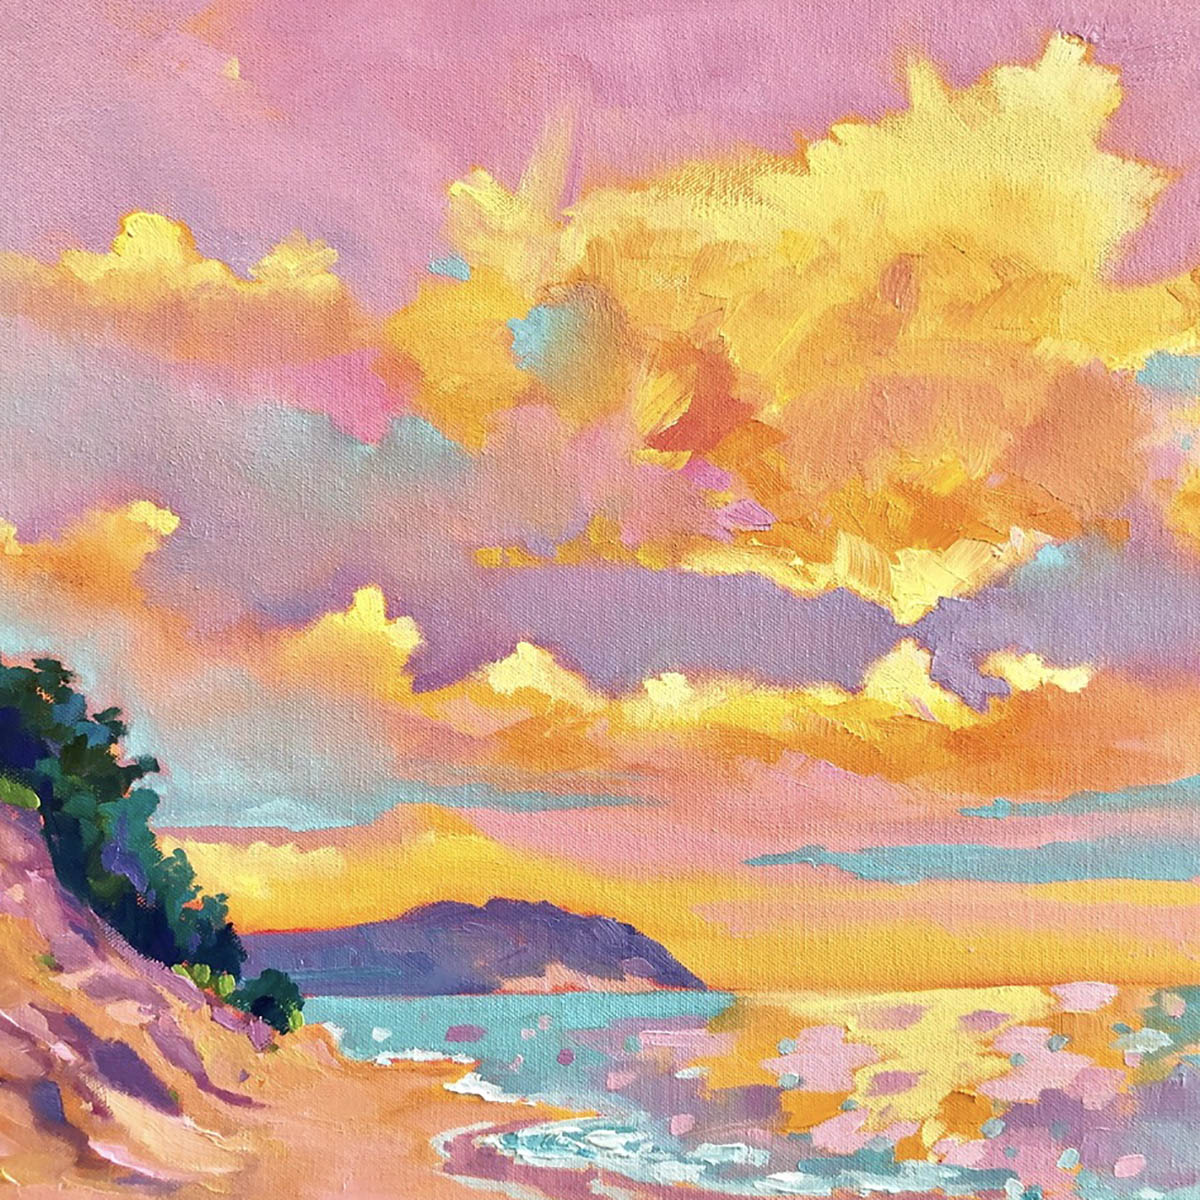 Call Me the Breeze - Painting by Stephanie Schlatter